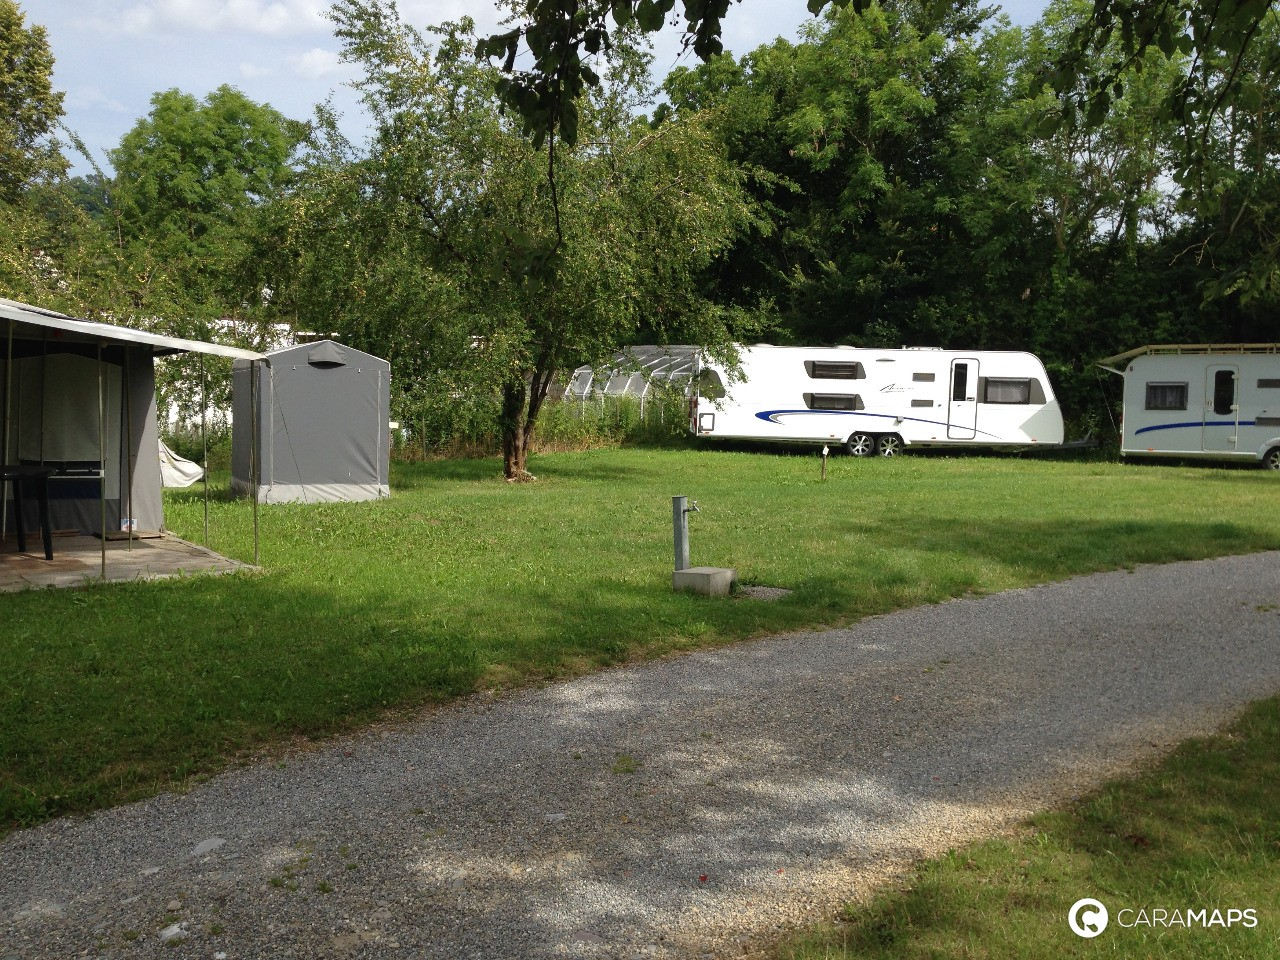 Discover Camping and Wohnmobil Park Papiermühle, a step by CaraMaps